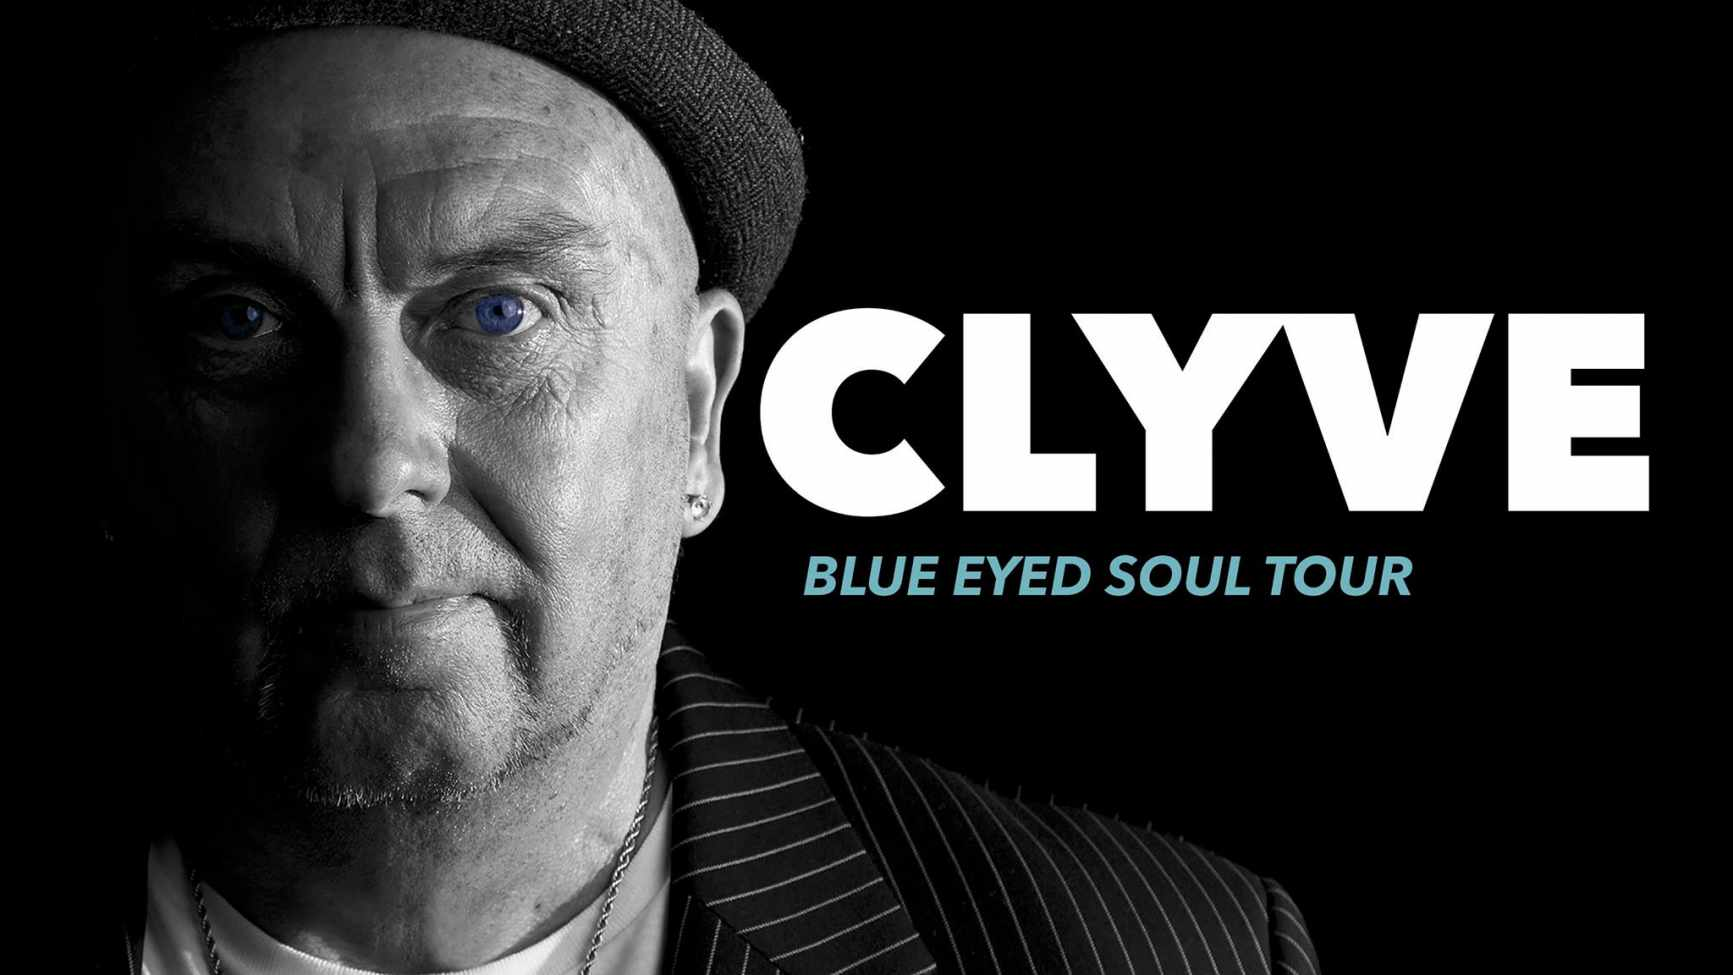 Clyve - UK Soul & RnB Recording Artist